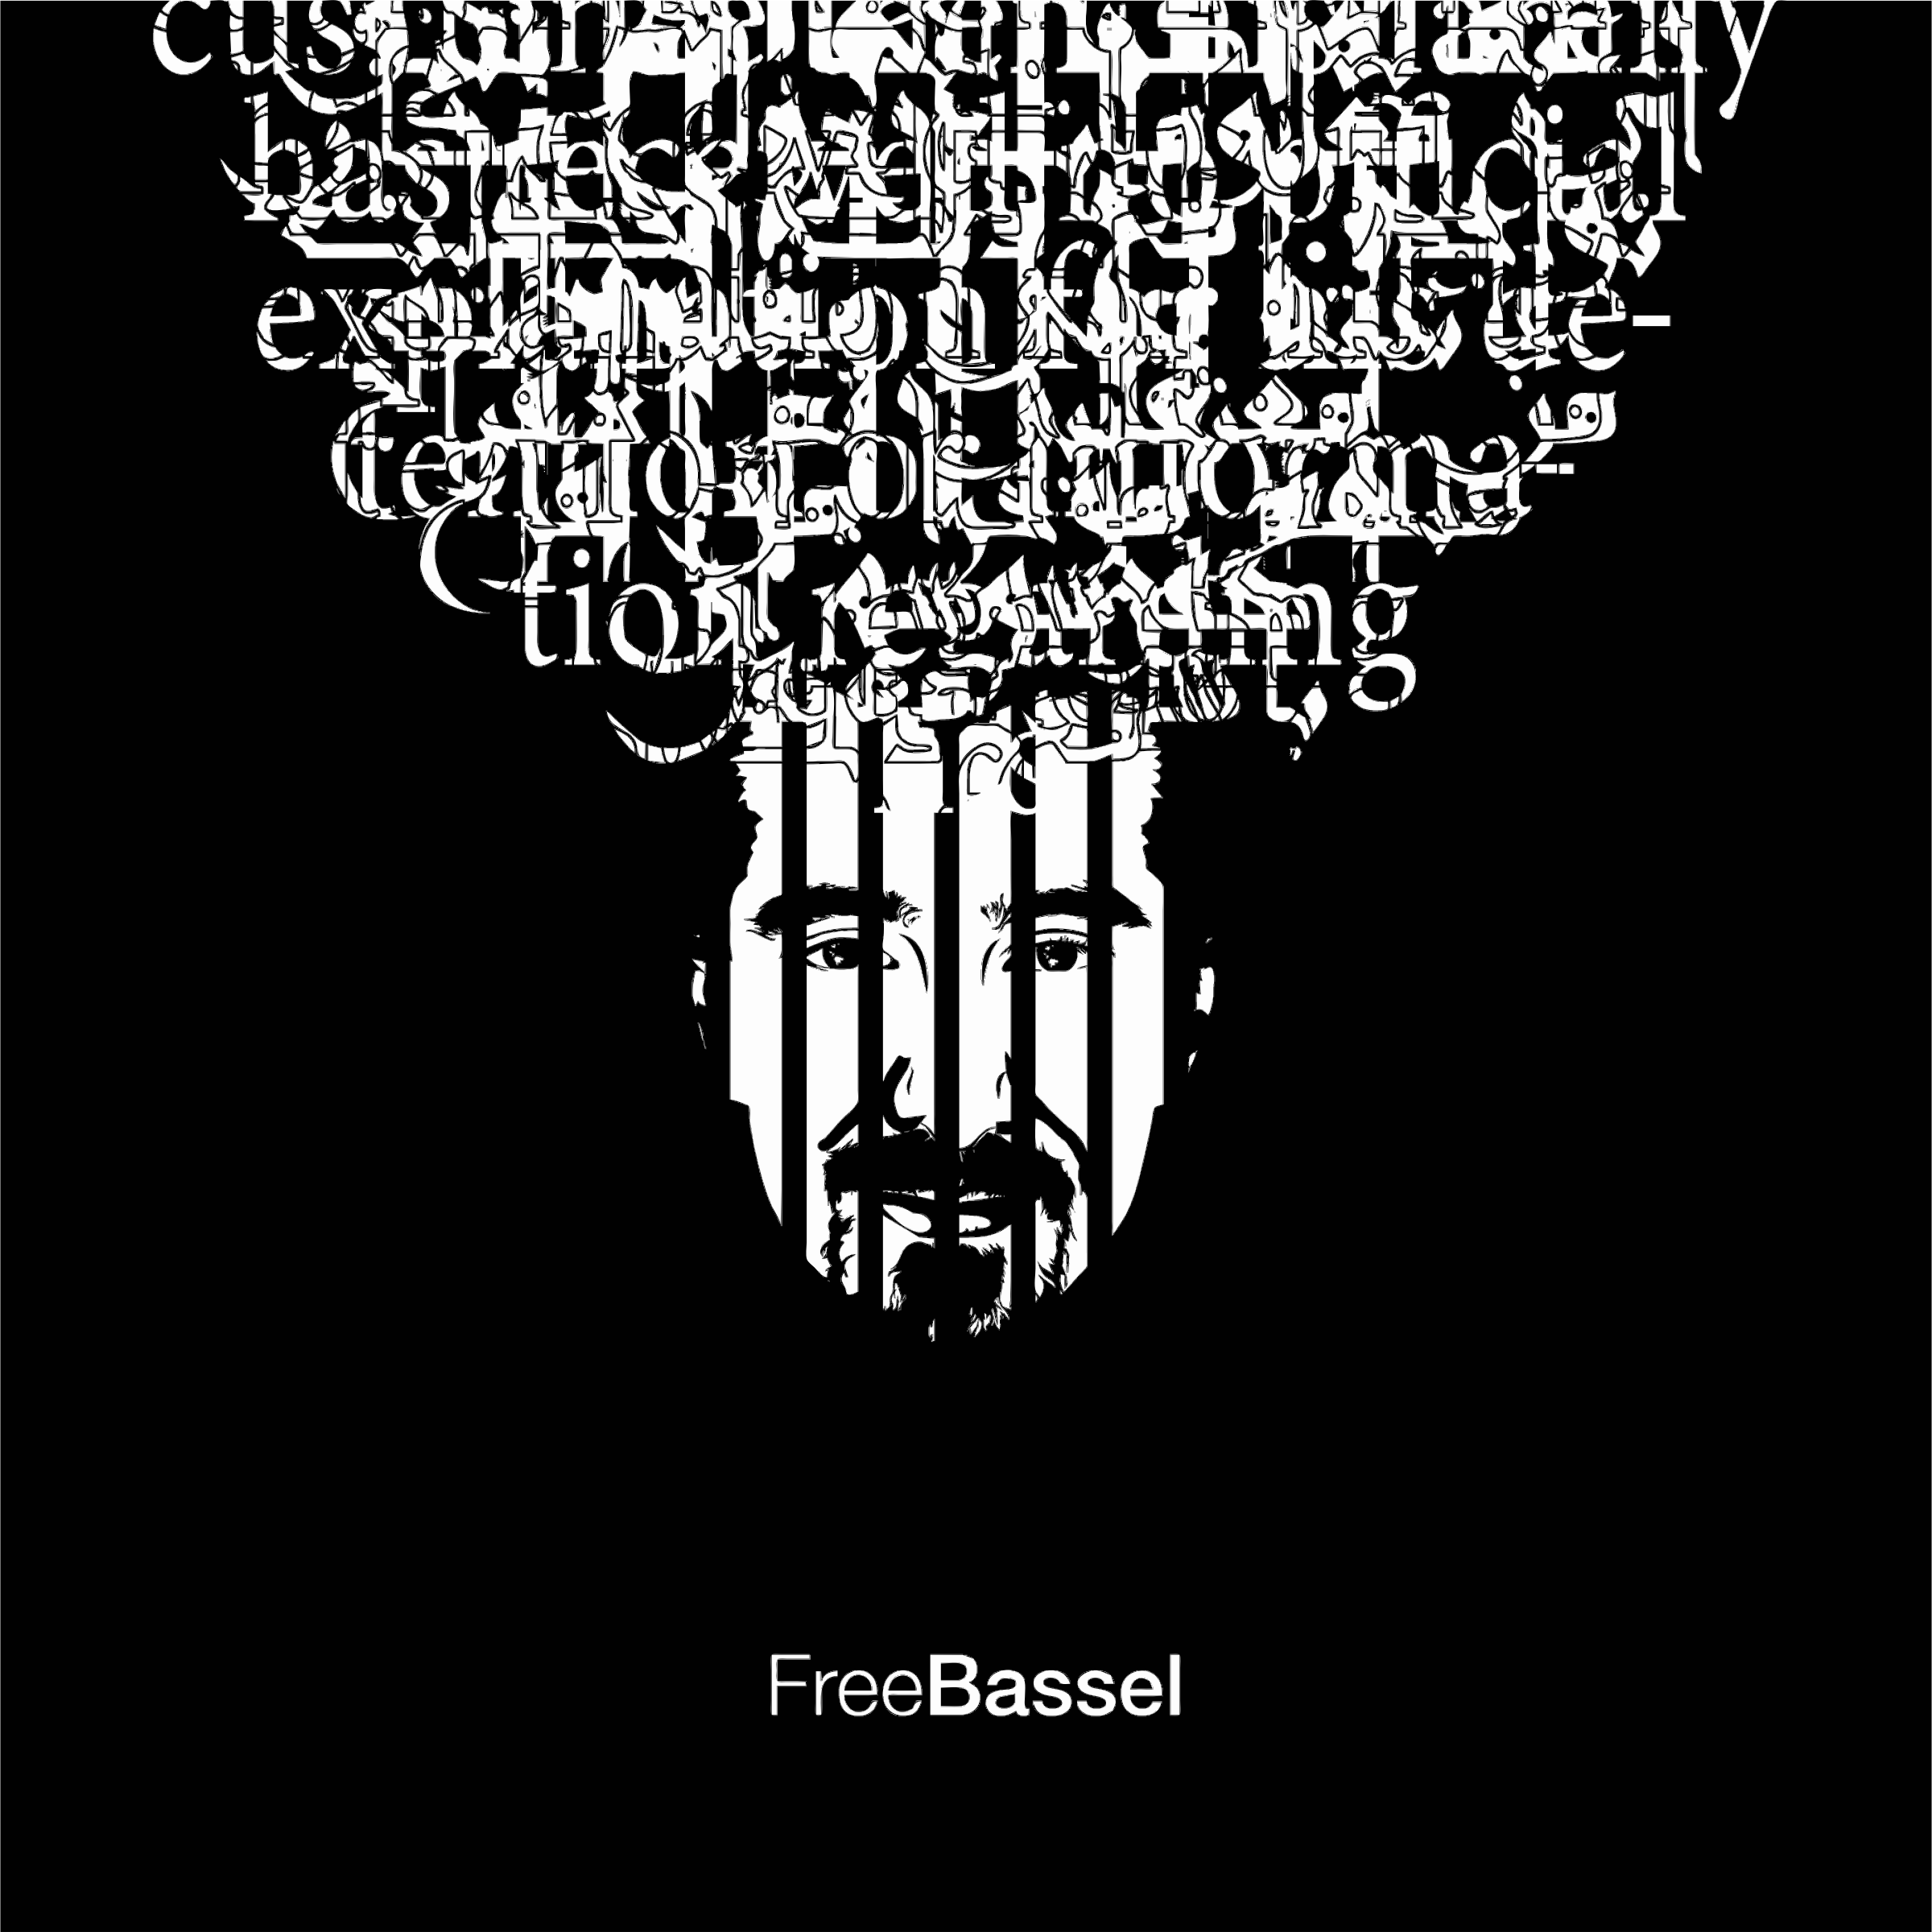 FreeBassel by Ahmad Ali by freebassel